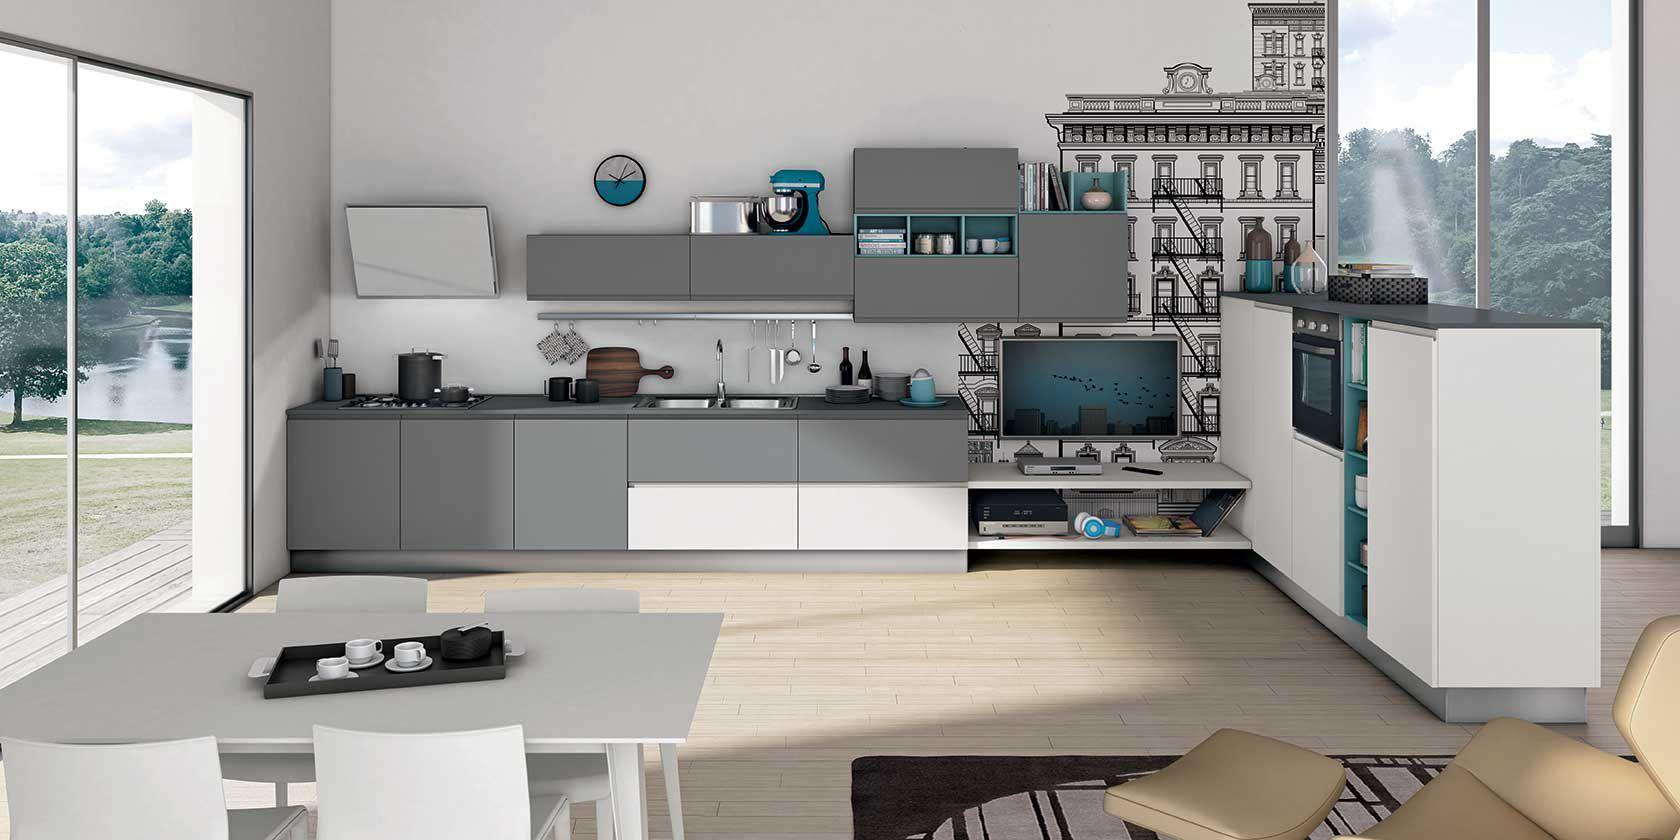 CUCINE CREO KITCHENS by LUBE CUCINE A CATANIA - CUCINE ...